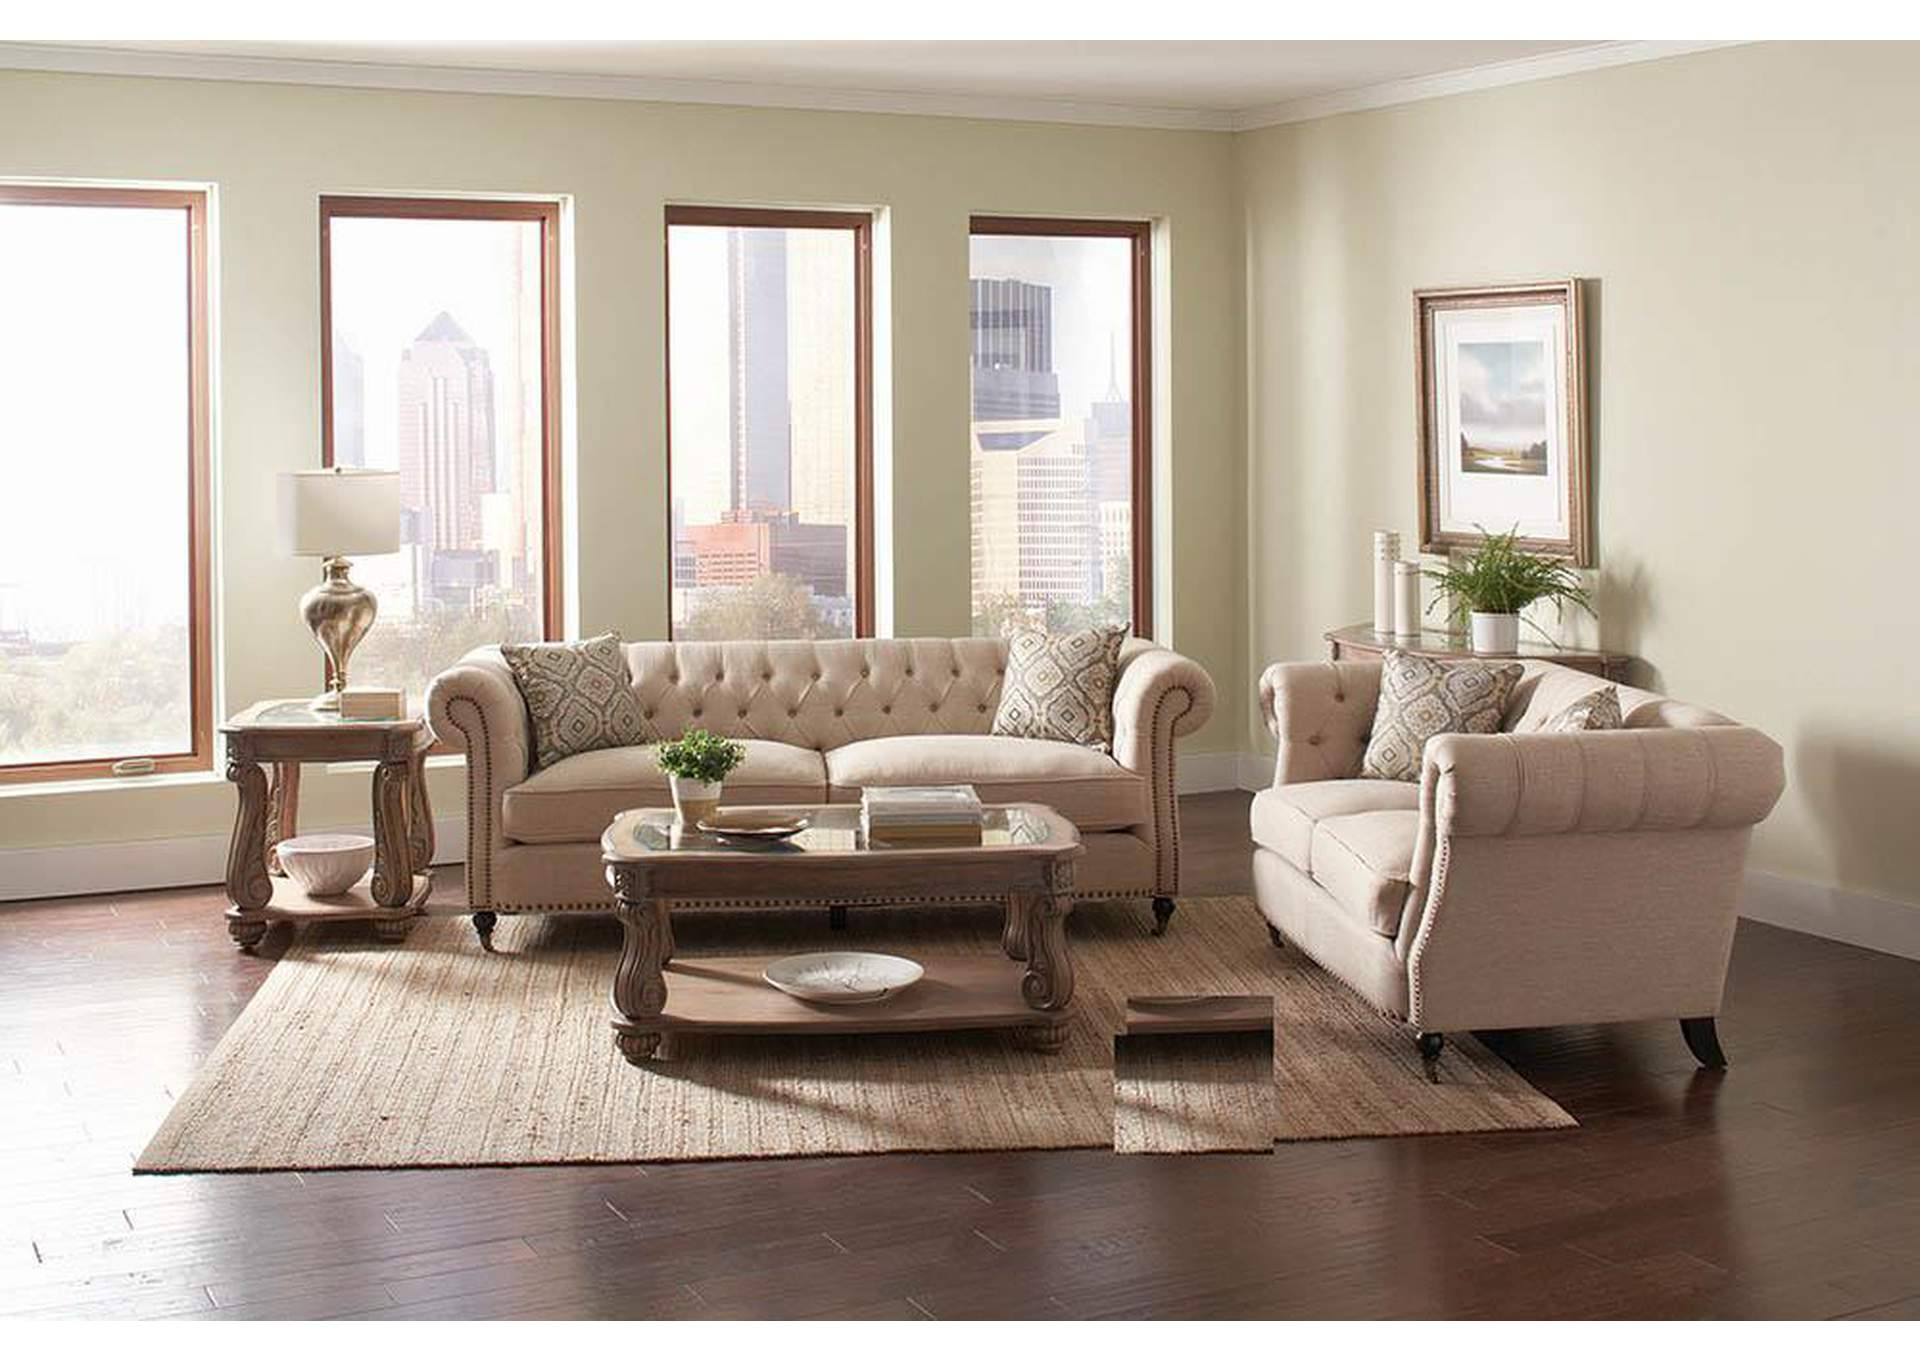 DN Furniture Scranton PA Dark Brown Sofa Magnificent Brown Sofas In Living Rooms Property